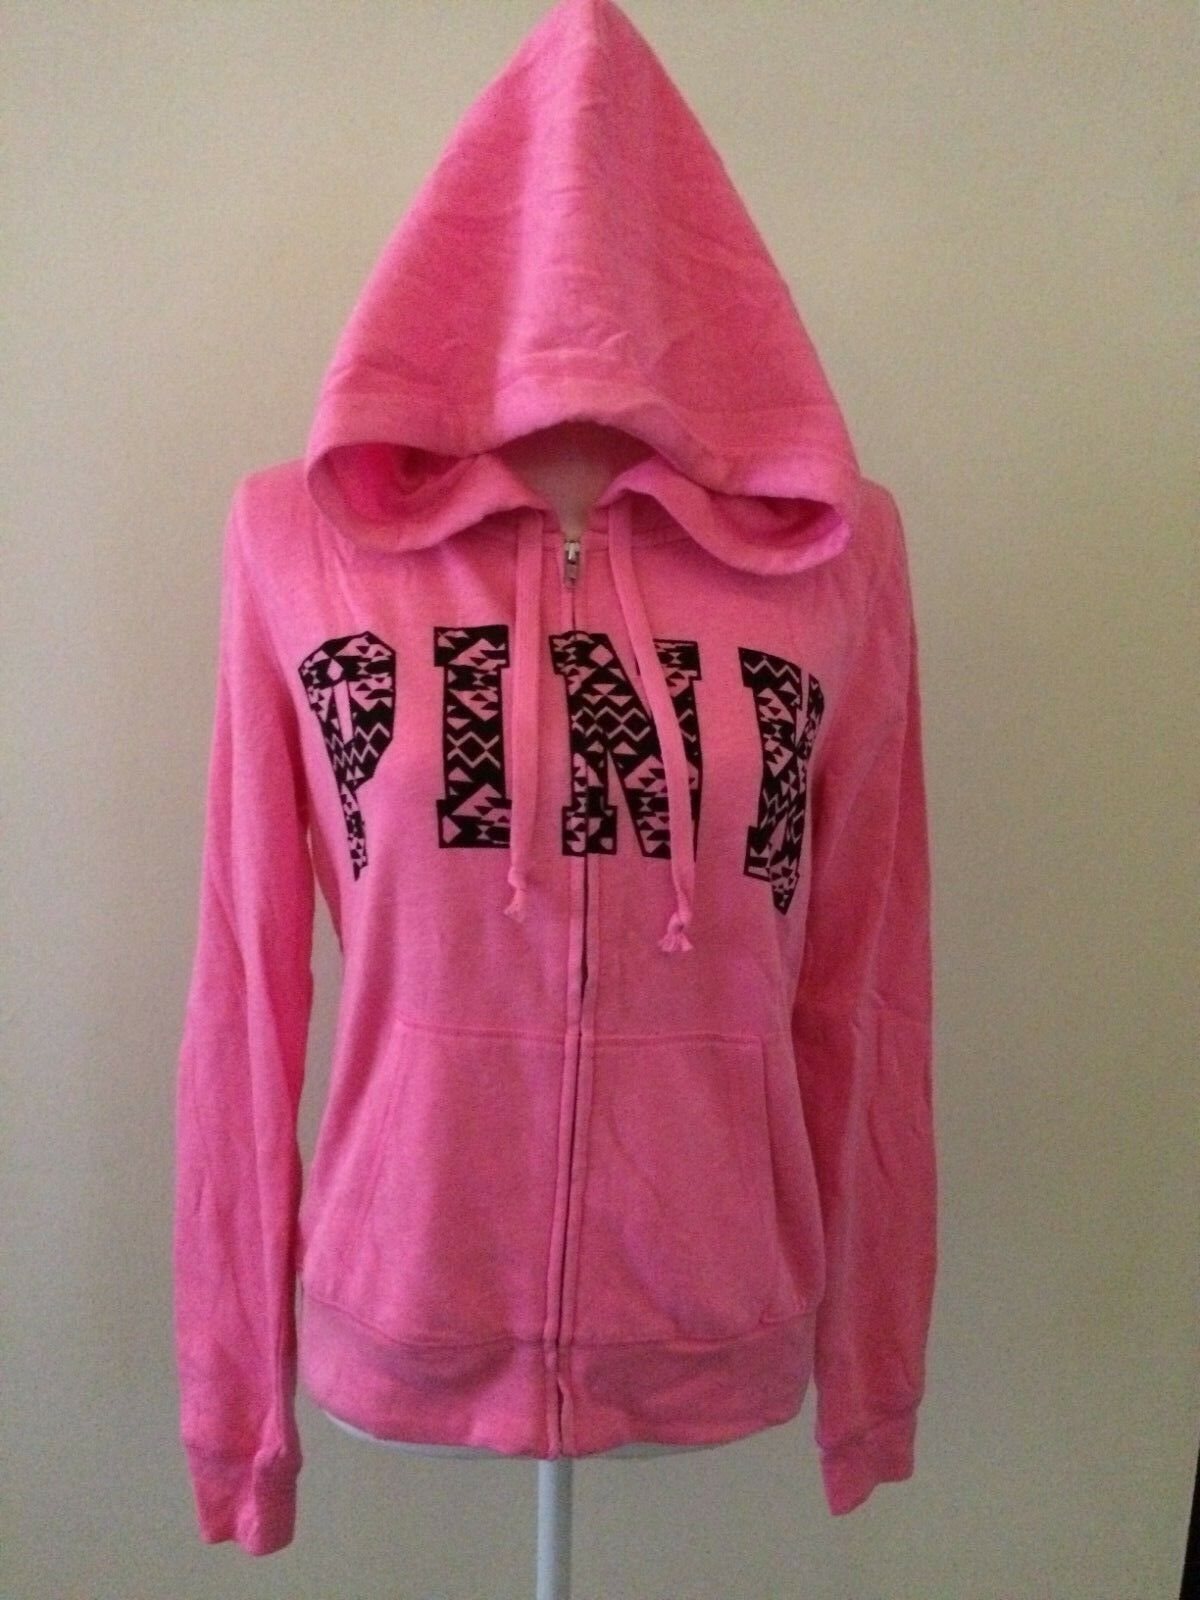 VICTORIA'S SECRET PINK M Limited Edition Perfect Zip Hoodie 2014 Aztec Geometric